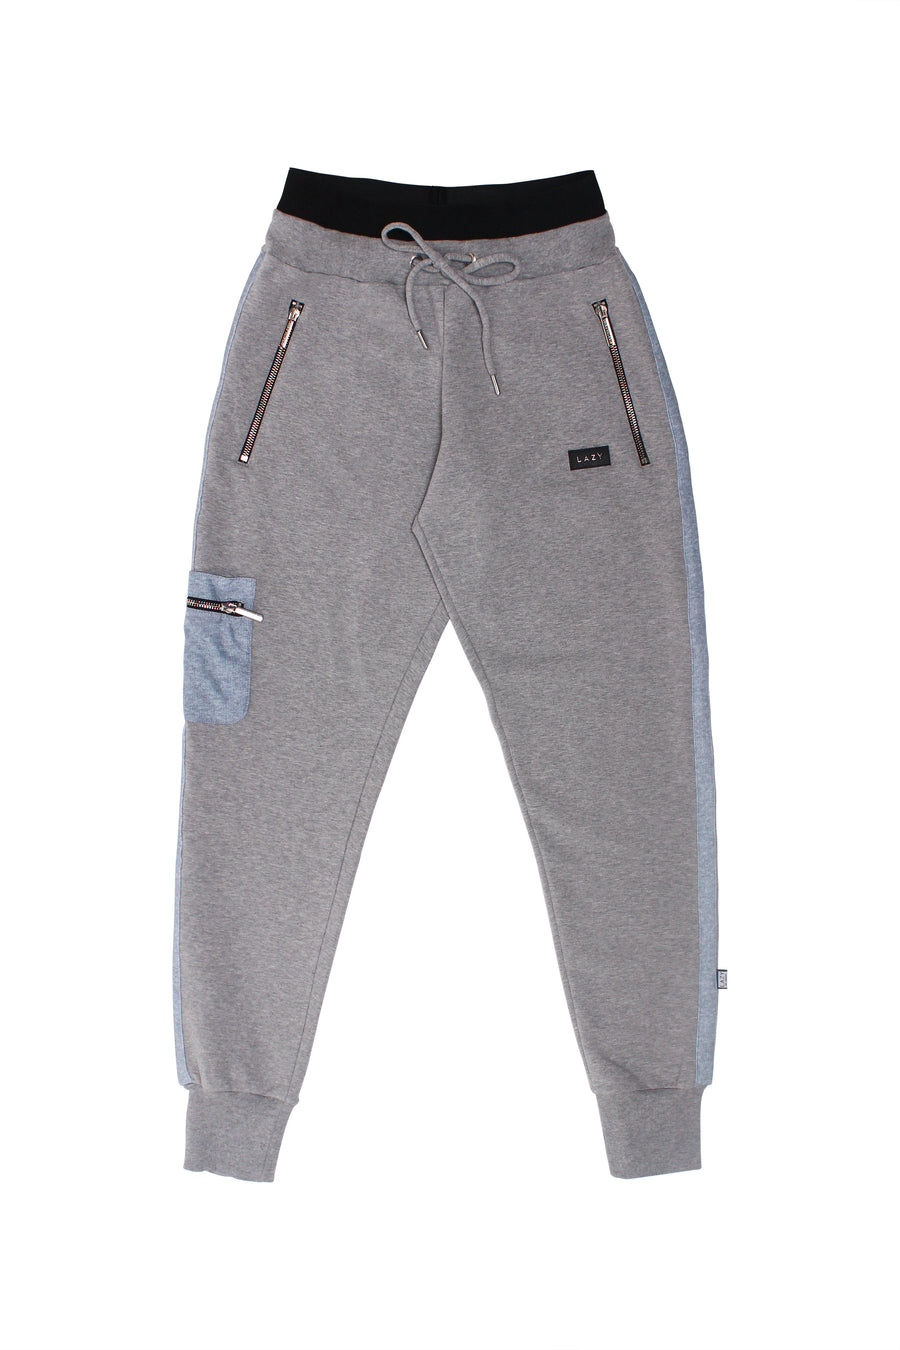 LAZY 2.0 Sweat Pants Gray-Bottoms-Christina Dienst